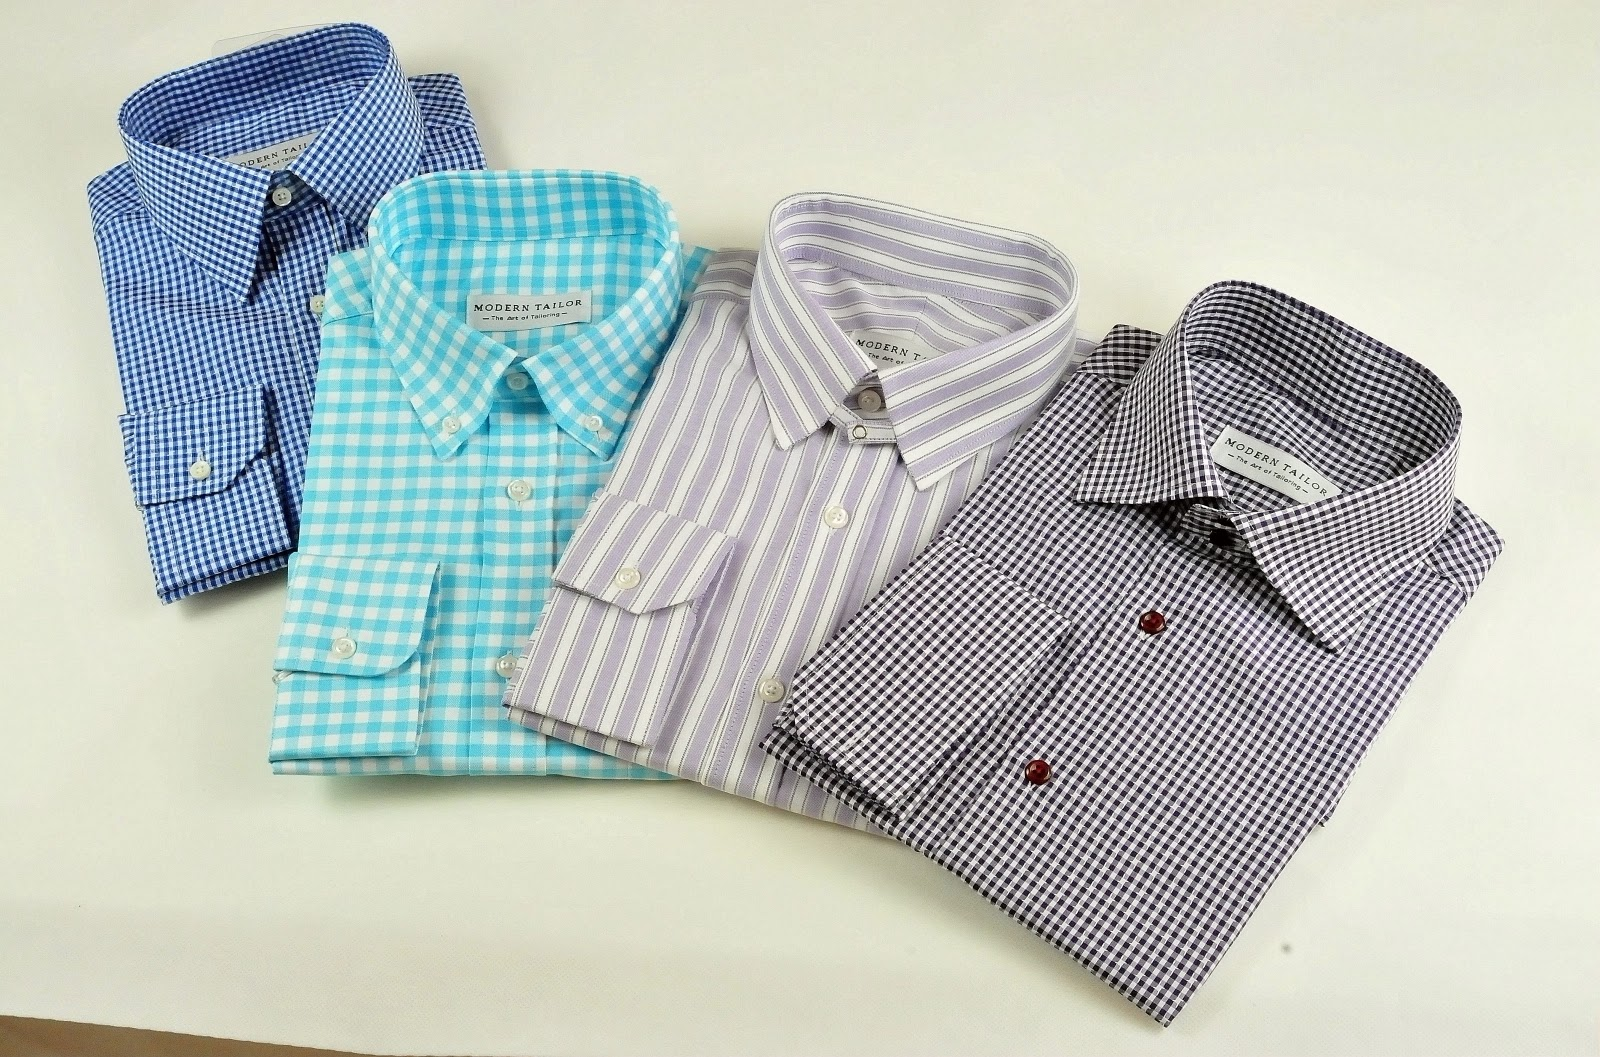 Dress Shirts Moderntailor Custom Tailored Shirts Online Modern